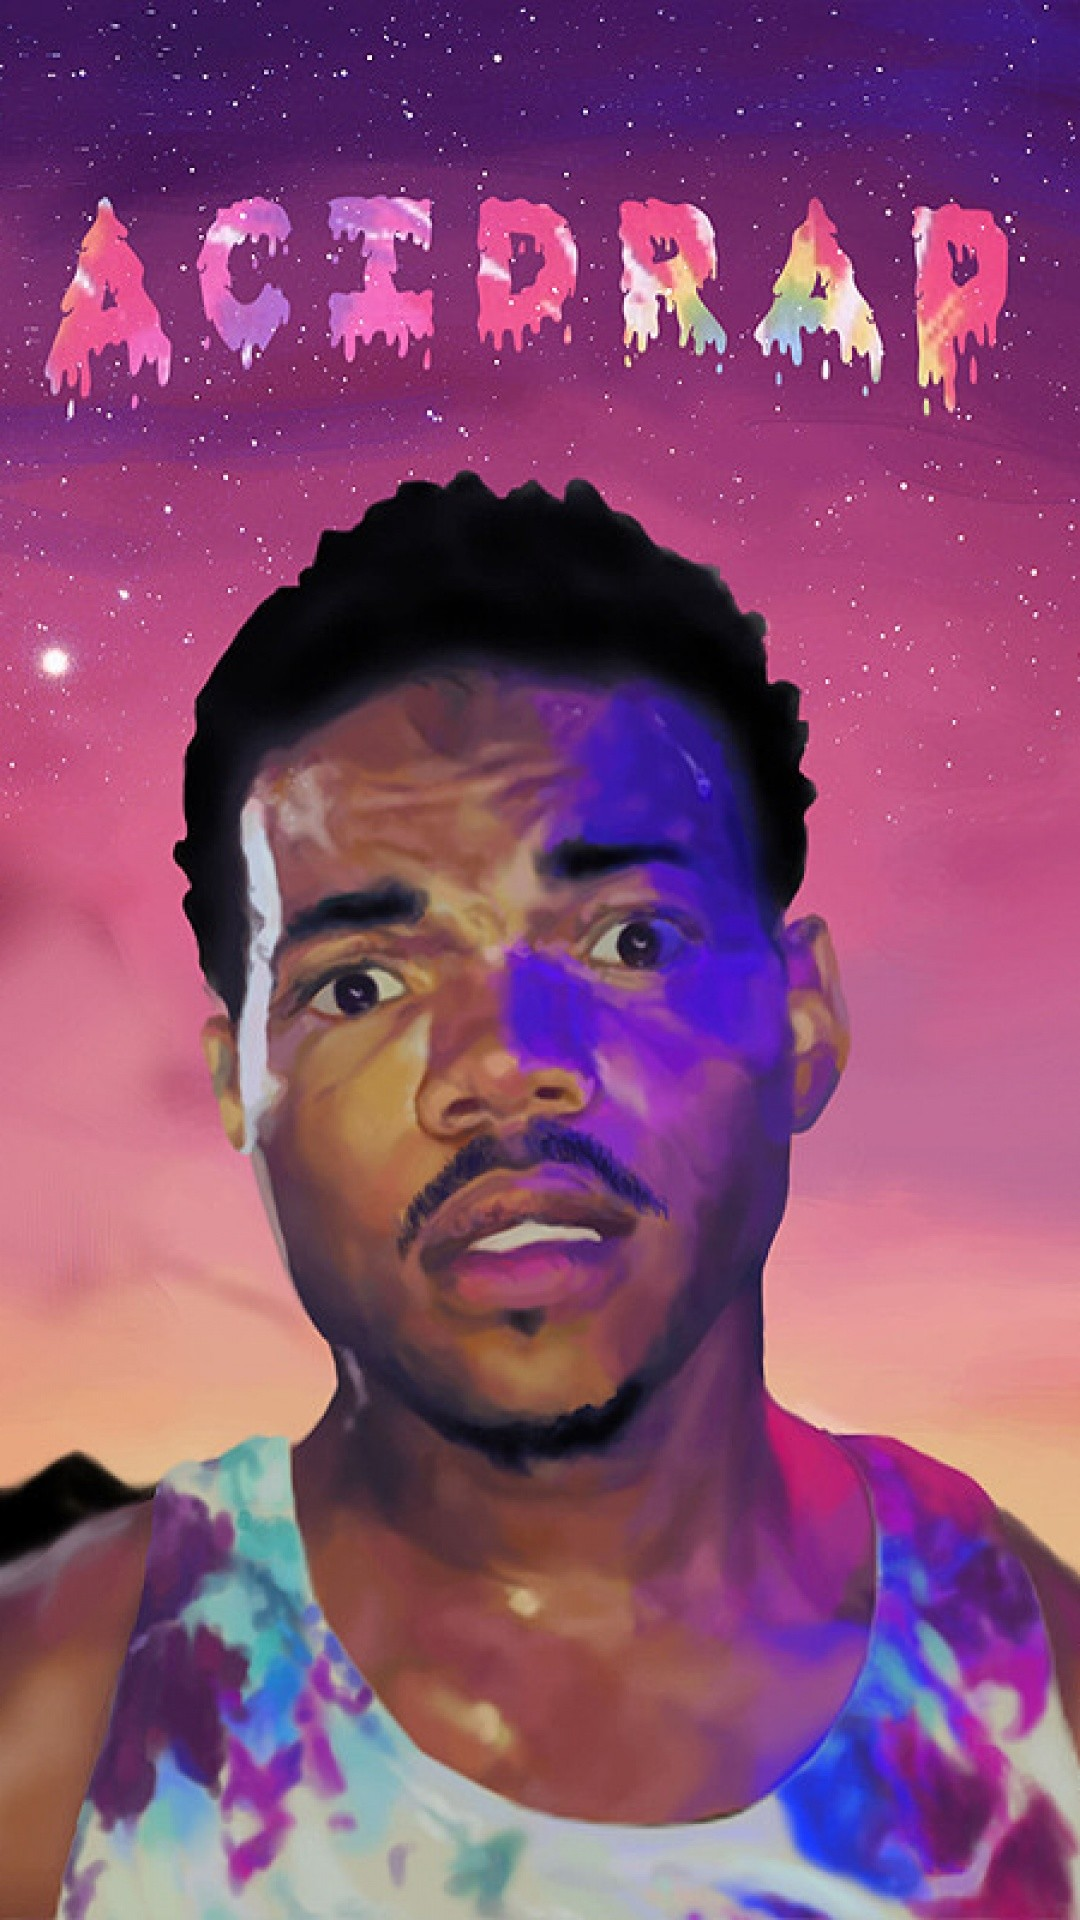 Chance The Rapper Iphone Wallpaper Trippy Iphone 6 Wallpaper 69 Images